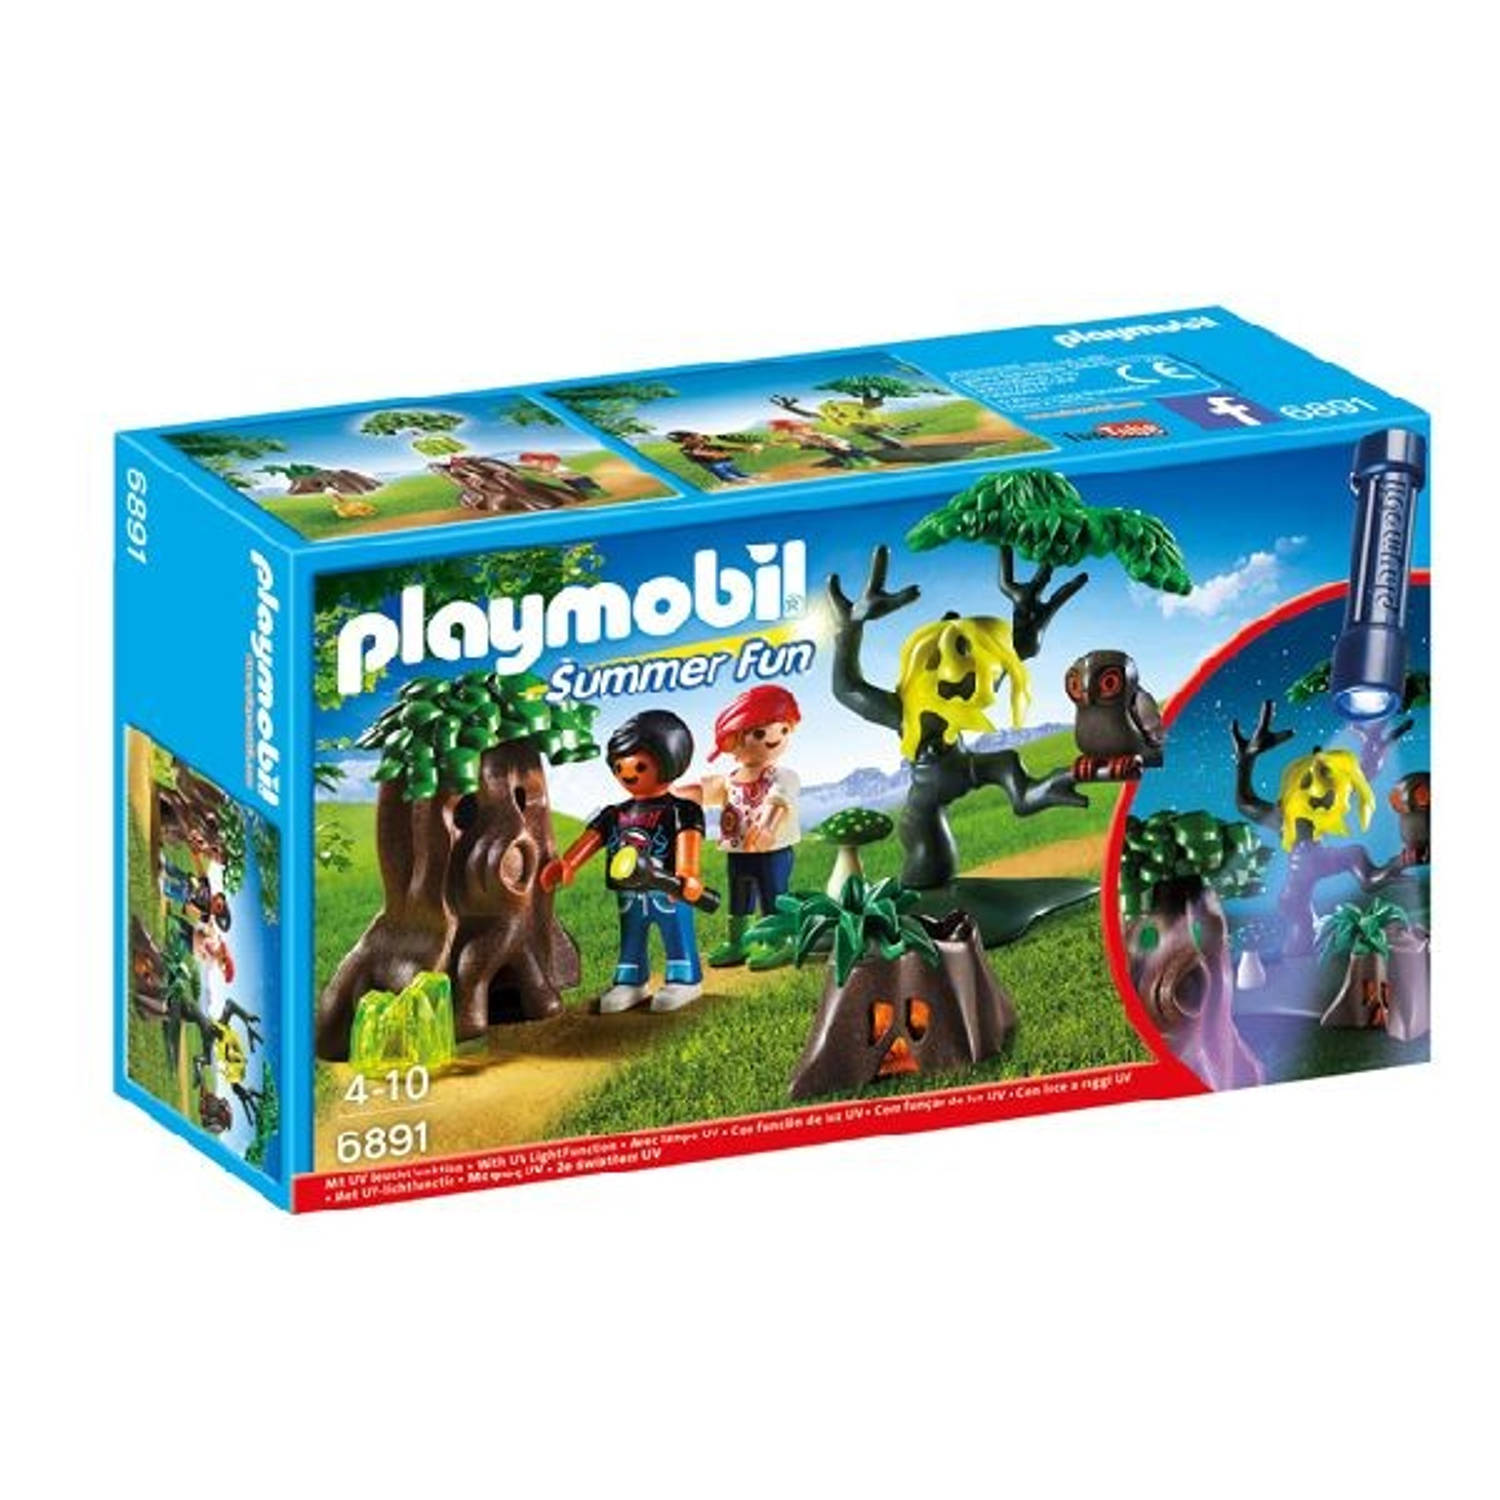 Playmobil Summer fun - Dropping + Lamp 6891